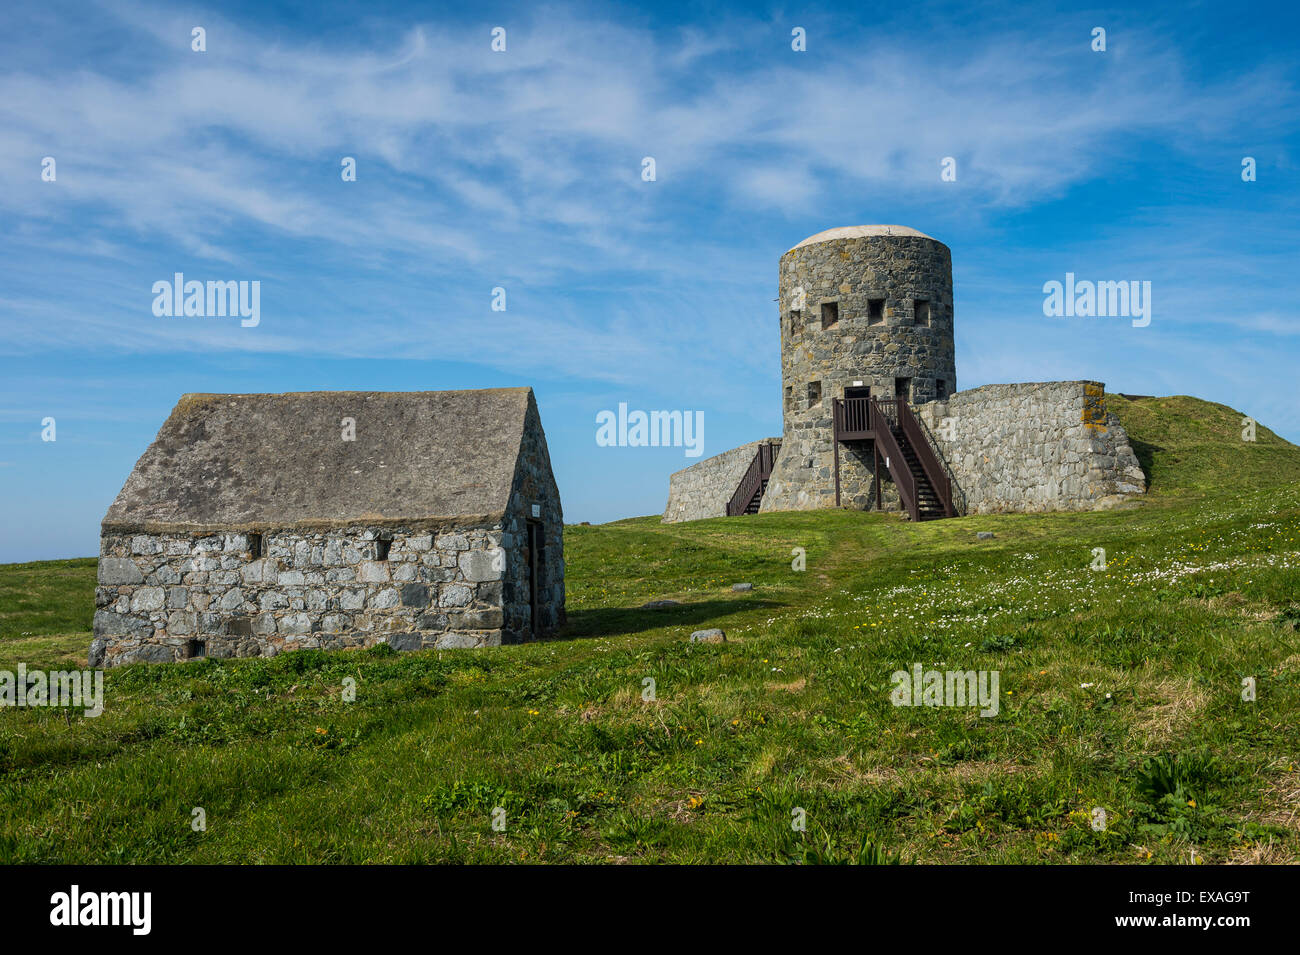 Matello defence tower, Guernsey, Channel Islands, United Kingdom, Europe - Stock Image